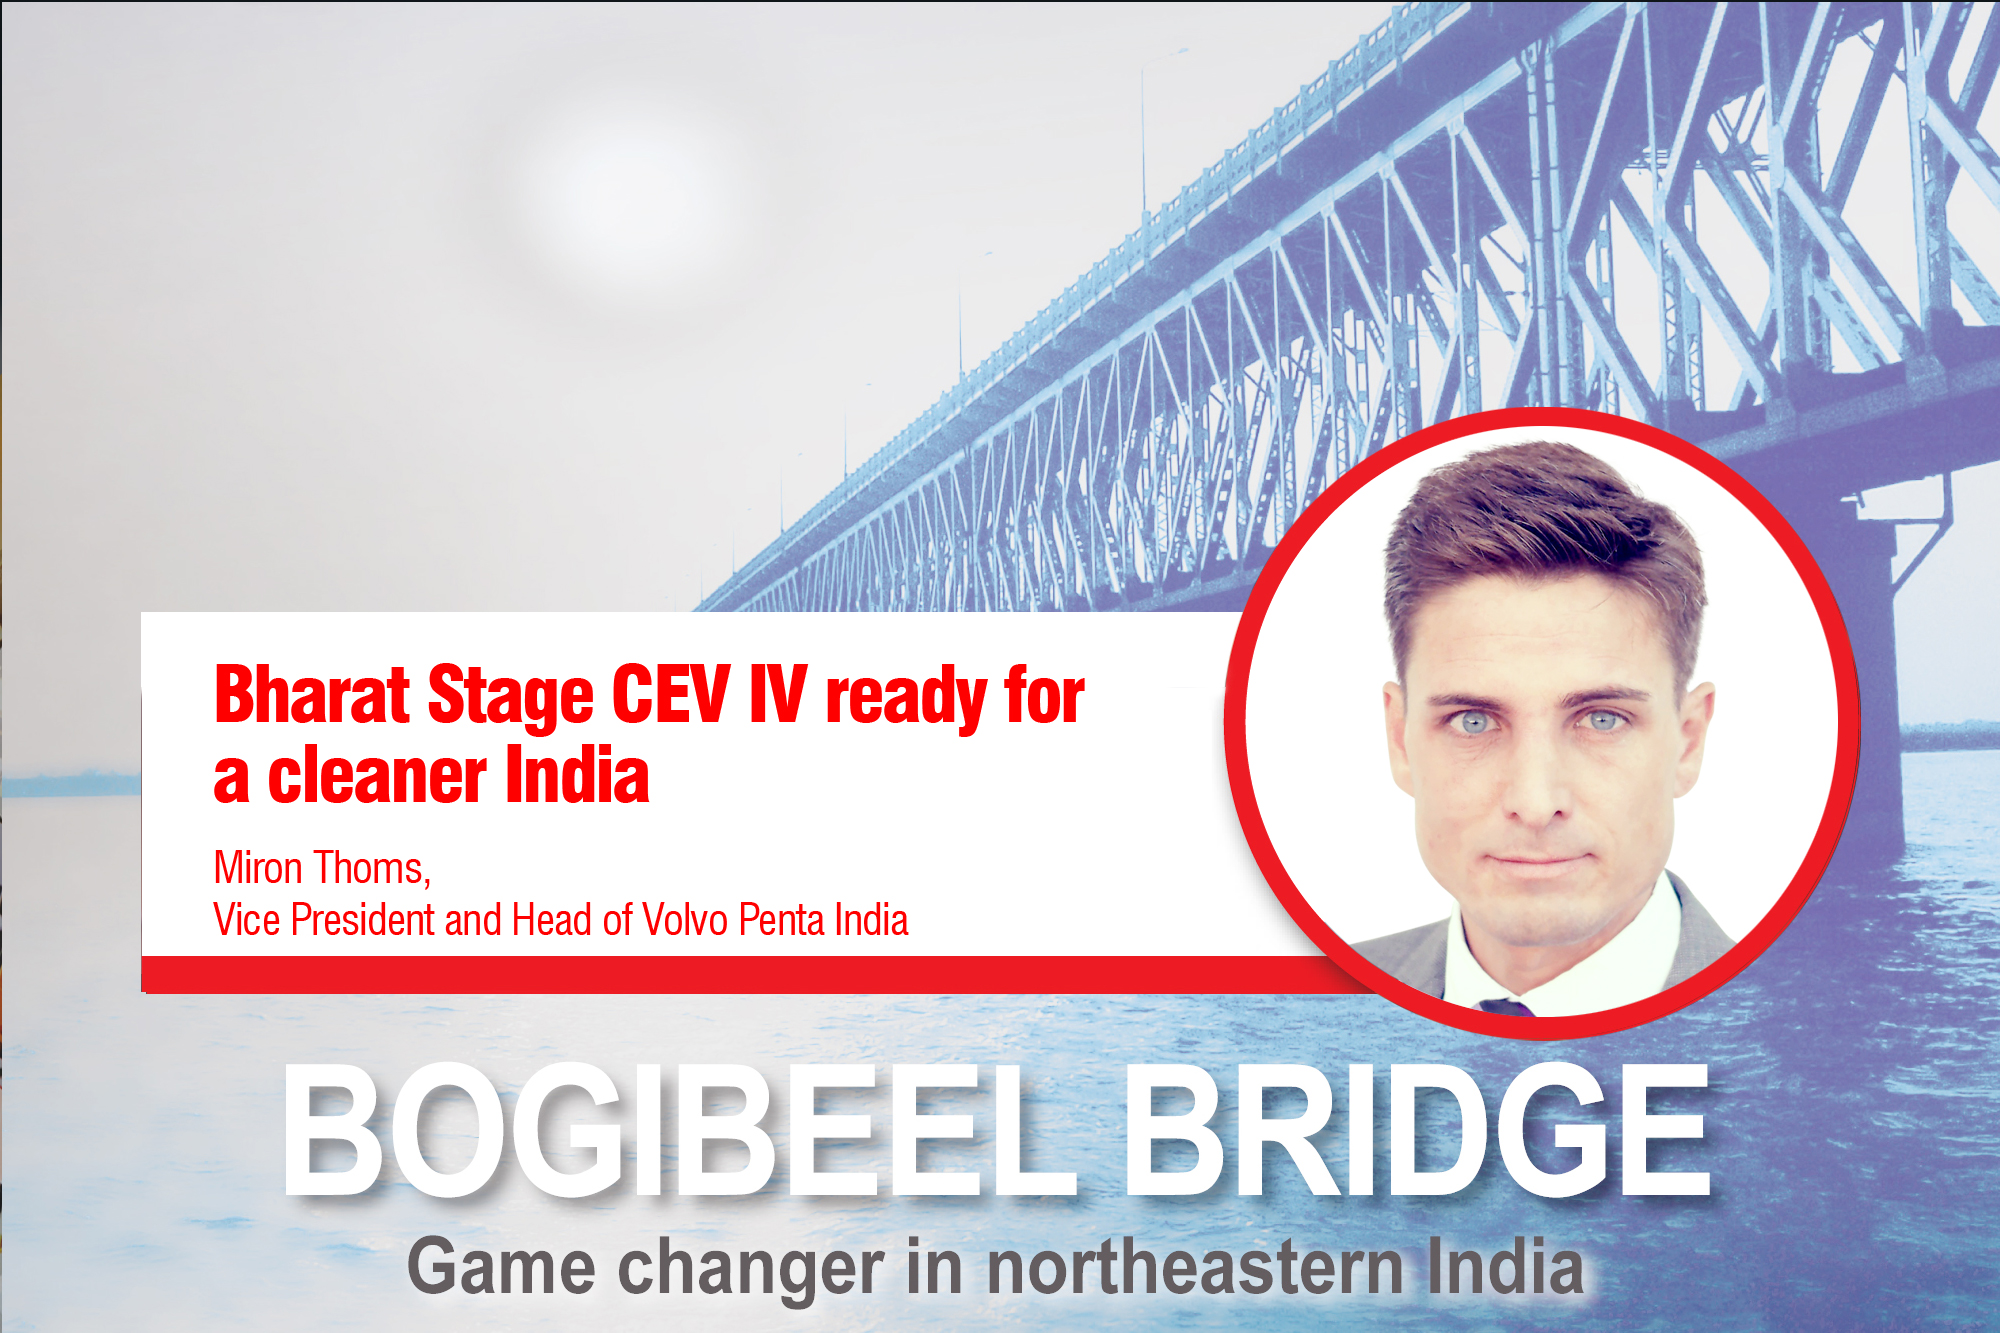 Bharat Stage CEV IV ready for a cleaner India